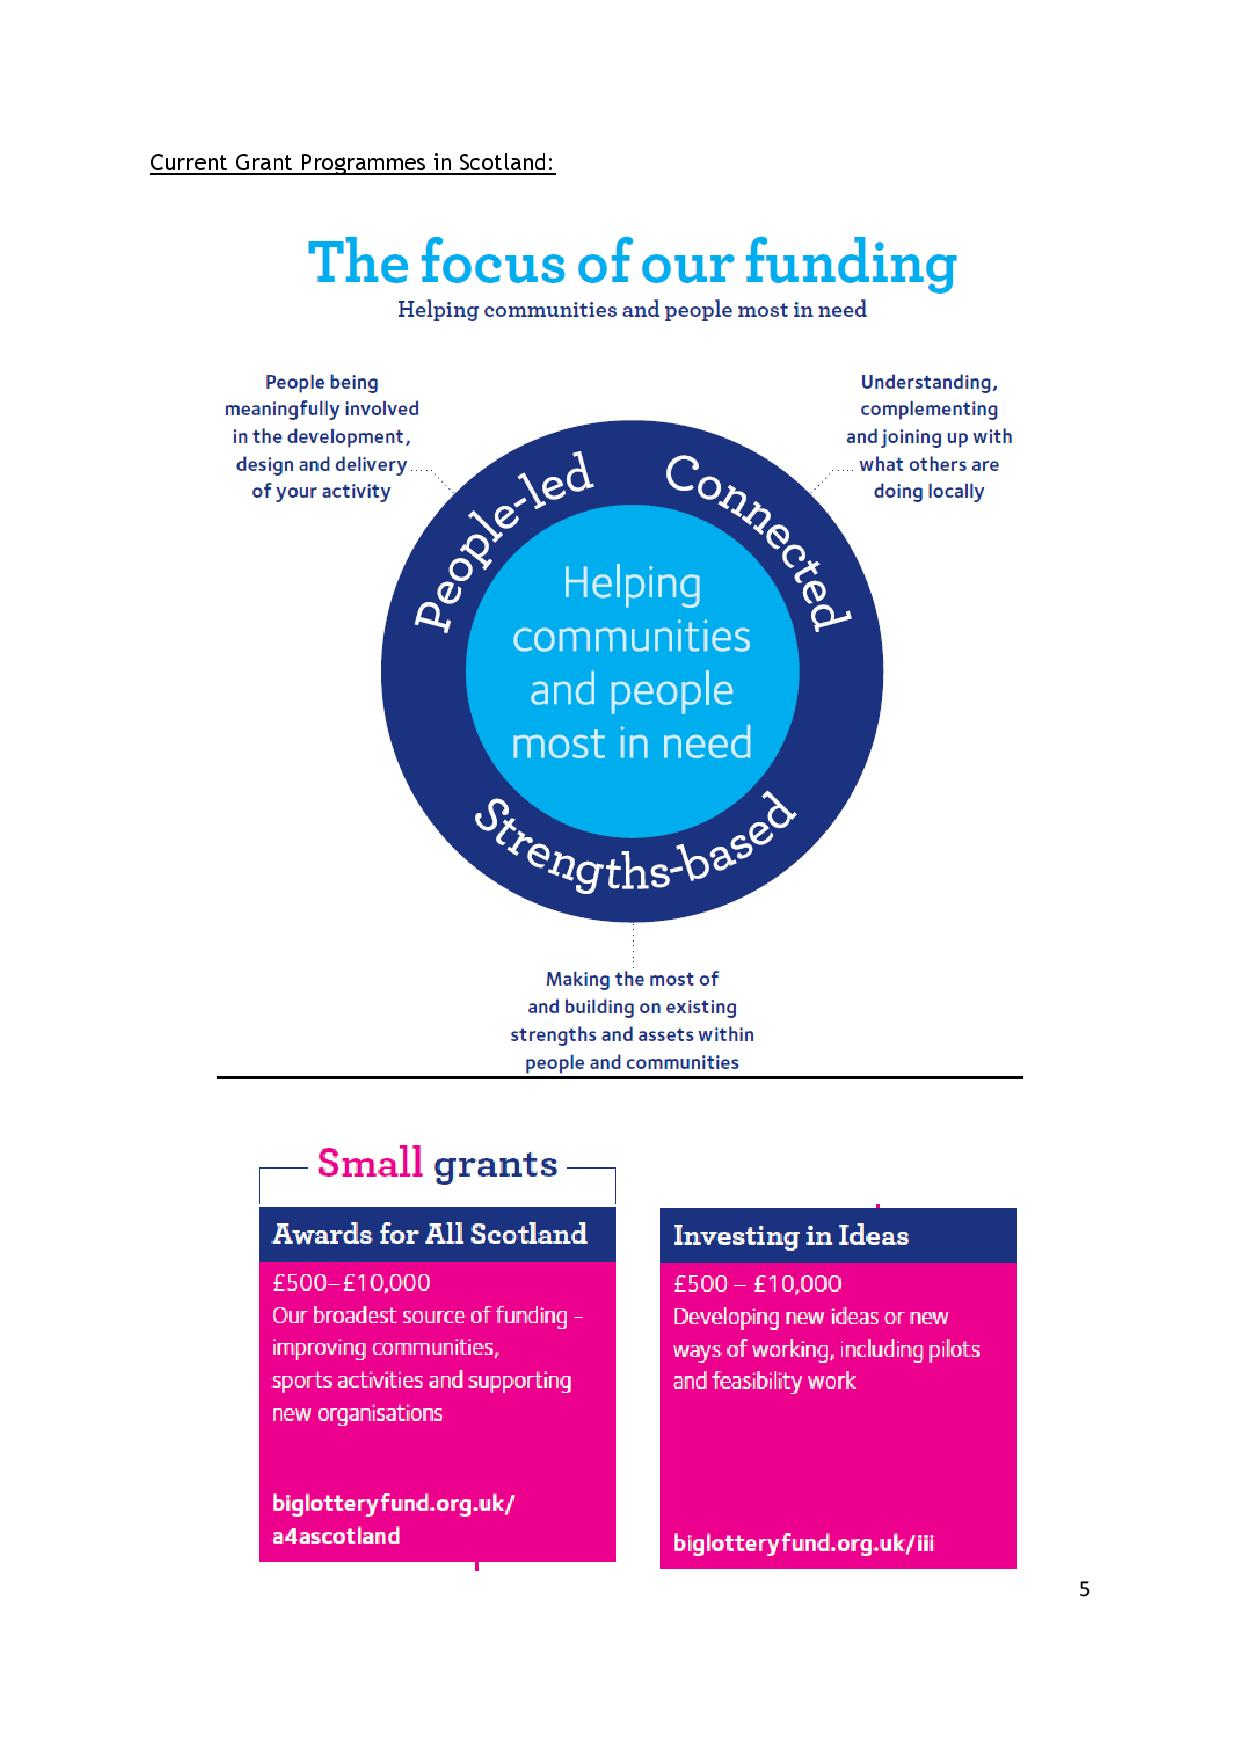 Big_Lottery_Fund_Scotland_Information_Briefing-page-005.jpg